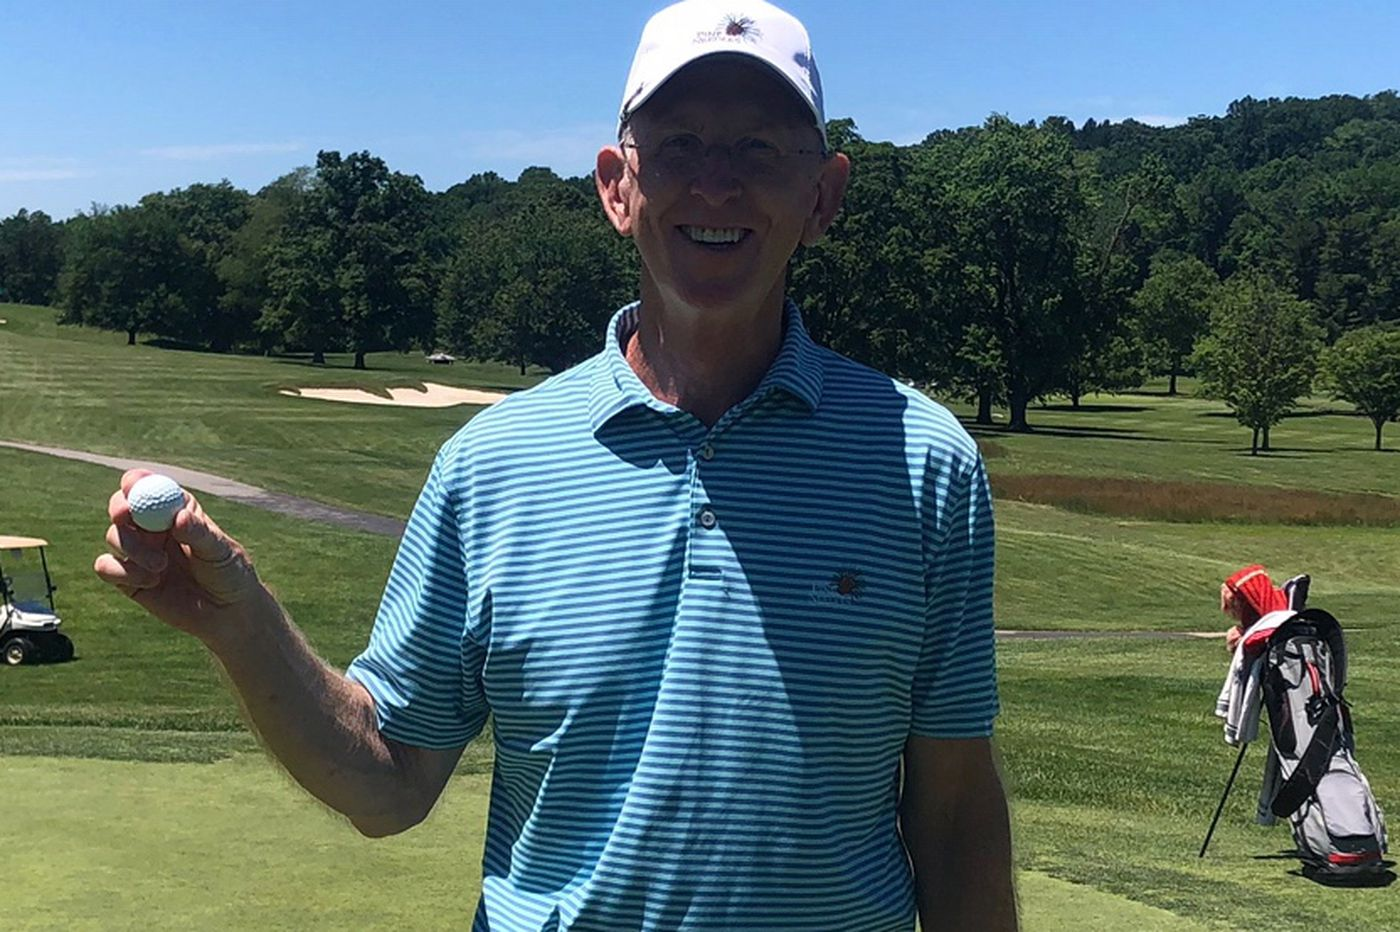 Fort Washington man makes two holes-in-one in the same round at Manufacturers